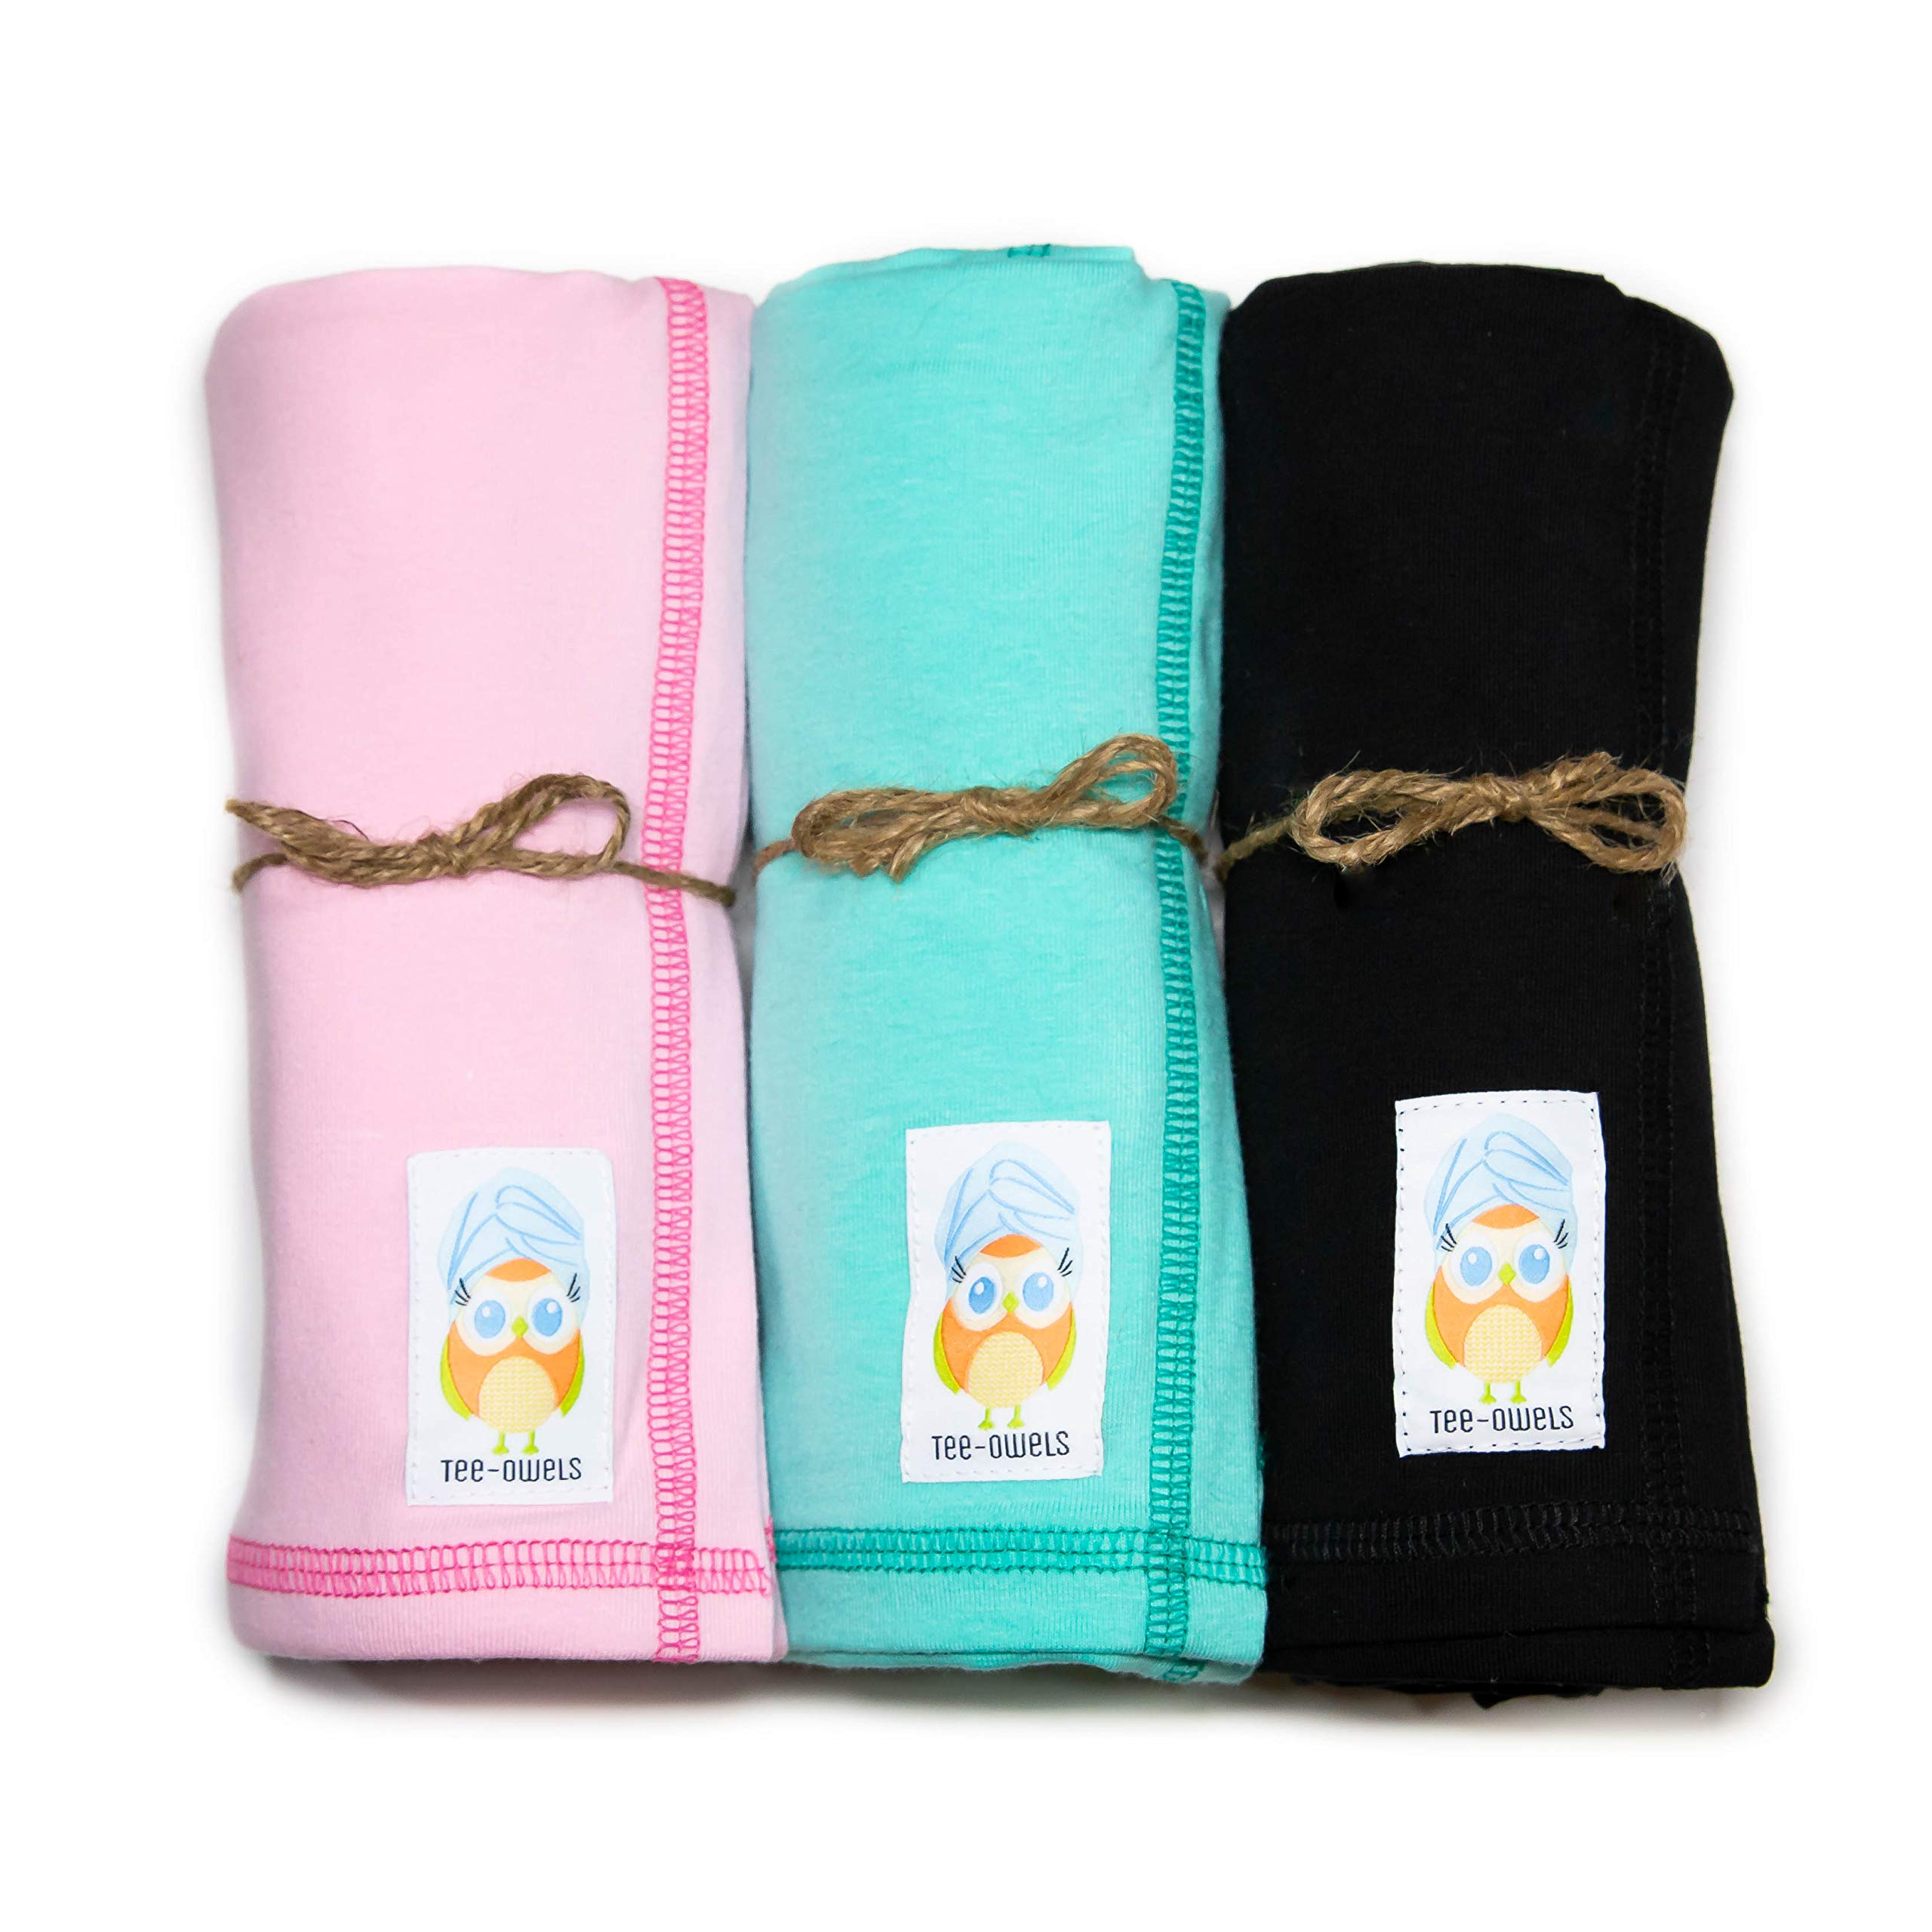 Tee-Owels Classy Combo (Short to Shoulder) - 3 Pack of Ideal Cotton T-Shirt Hair Towels for Natural and Curly Hair Care - Promotes Healthy Hair by Preventing Damage, Breakage, and Frizz by Tee-Owels